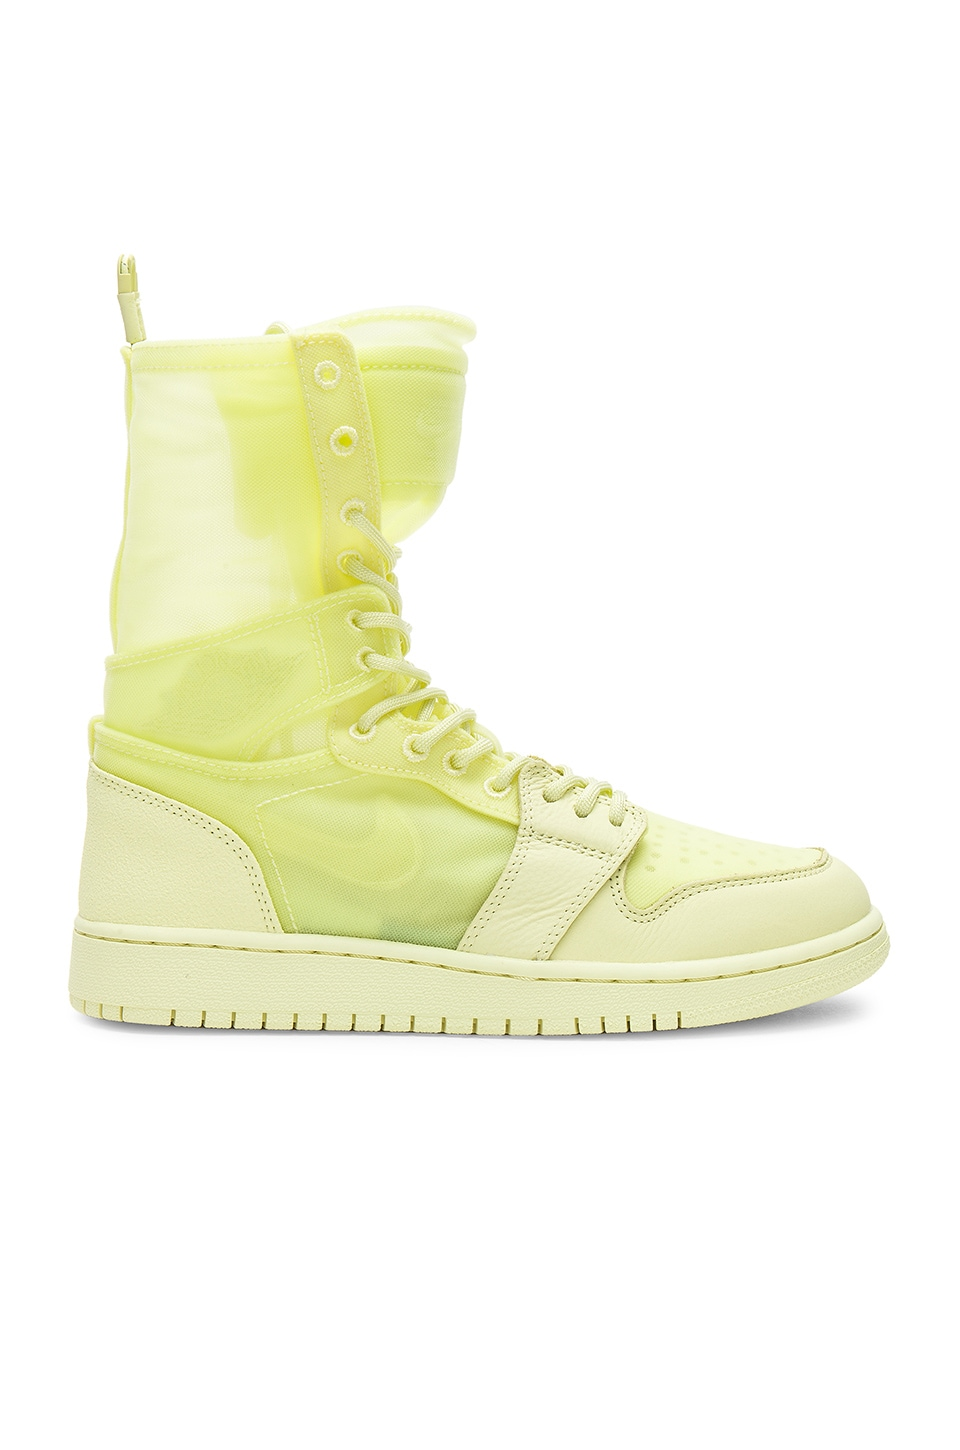 lowest price 86ca8 97810 Jordan AJ1 Explorer XX Sneaker in Luminous Green | REVOLVE